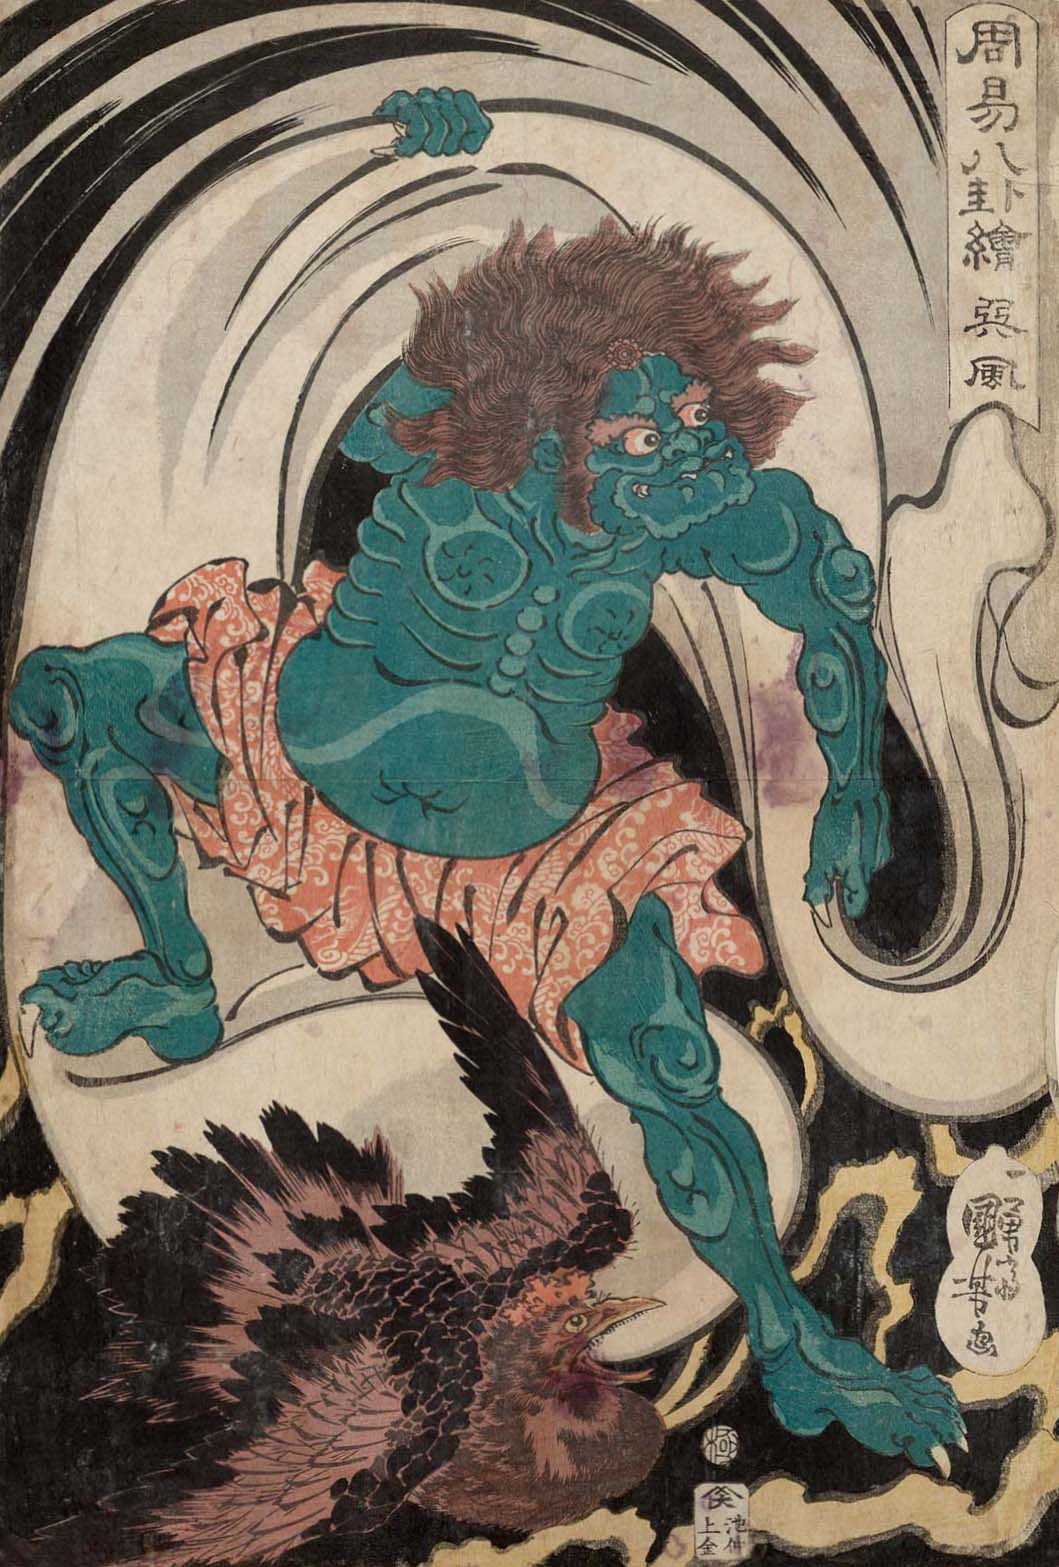 Utagawa Kuniyoshi - The Trigram Xun or Wind (Son, kaze), from the series Pictures of the Eight Trigrams in Chinese Divination (Shûeki hakke e) 1830's